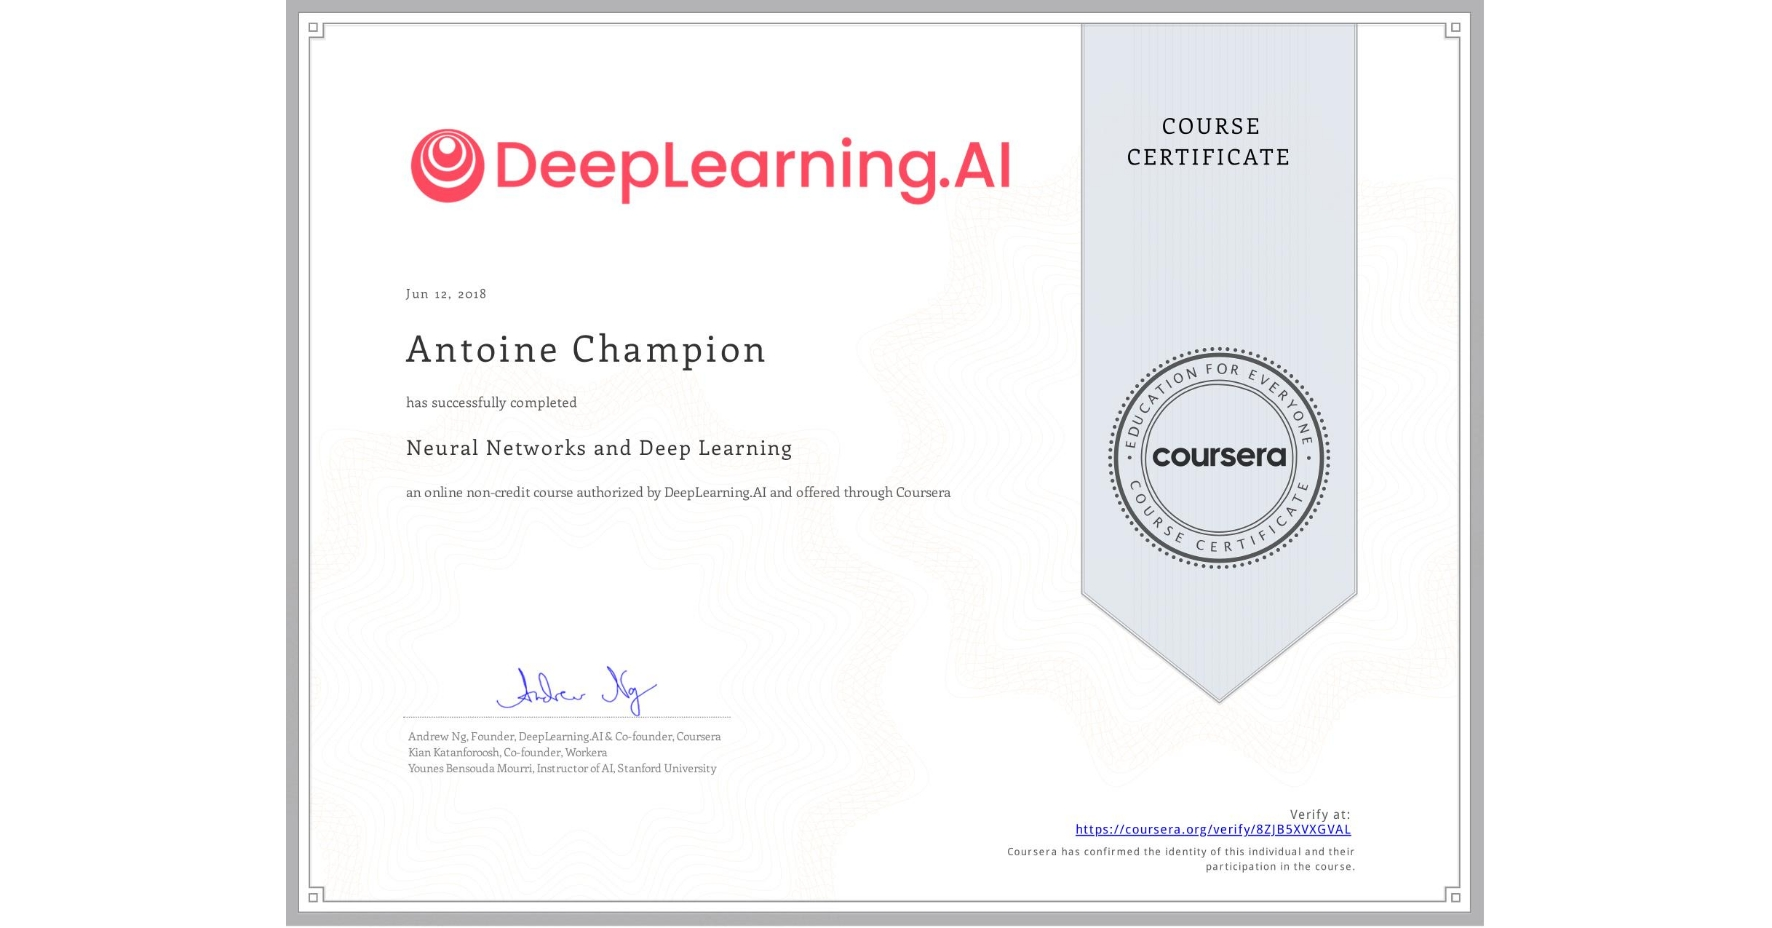 View certificate for Antoine Champion, Neural Networks and Deep Learning, an online non-credit course authorized by DeepLearning.AI and offered through Coursera